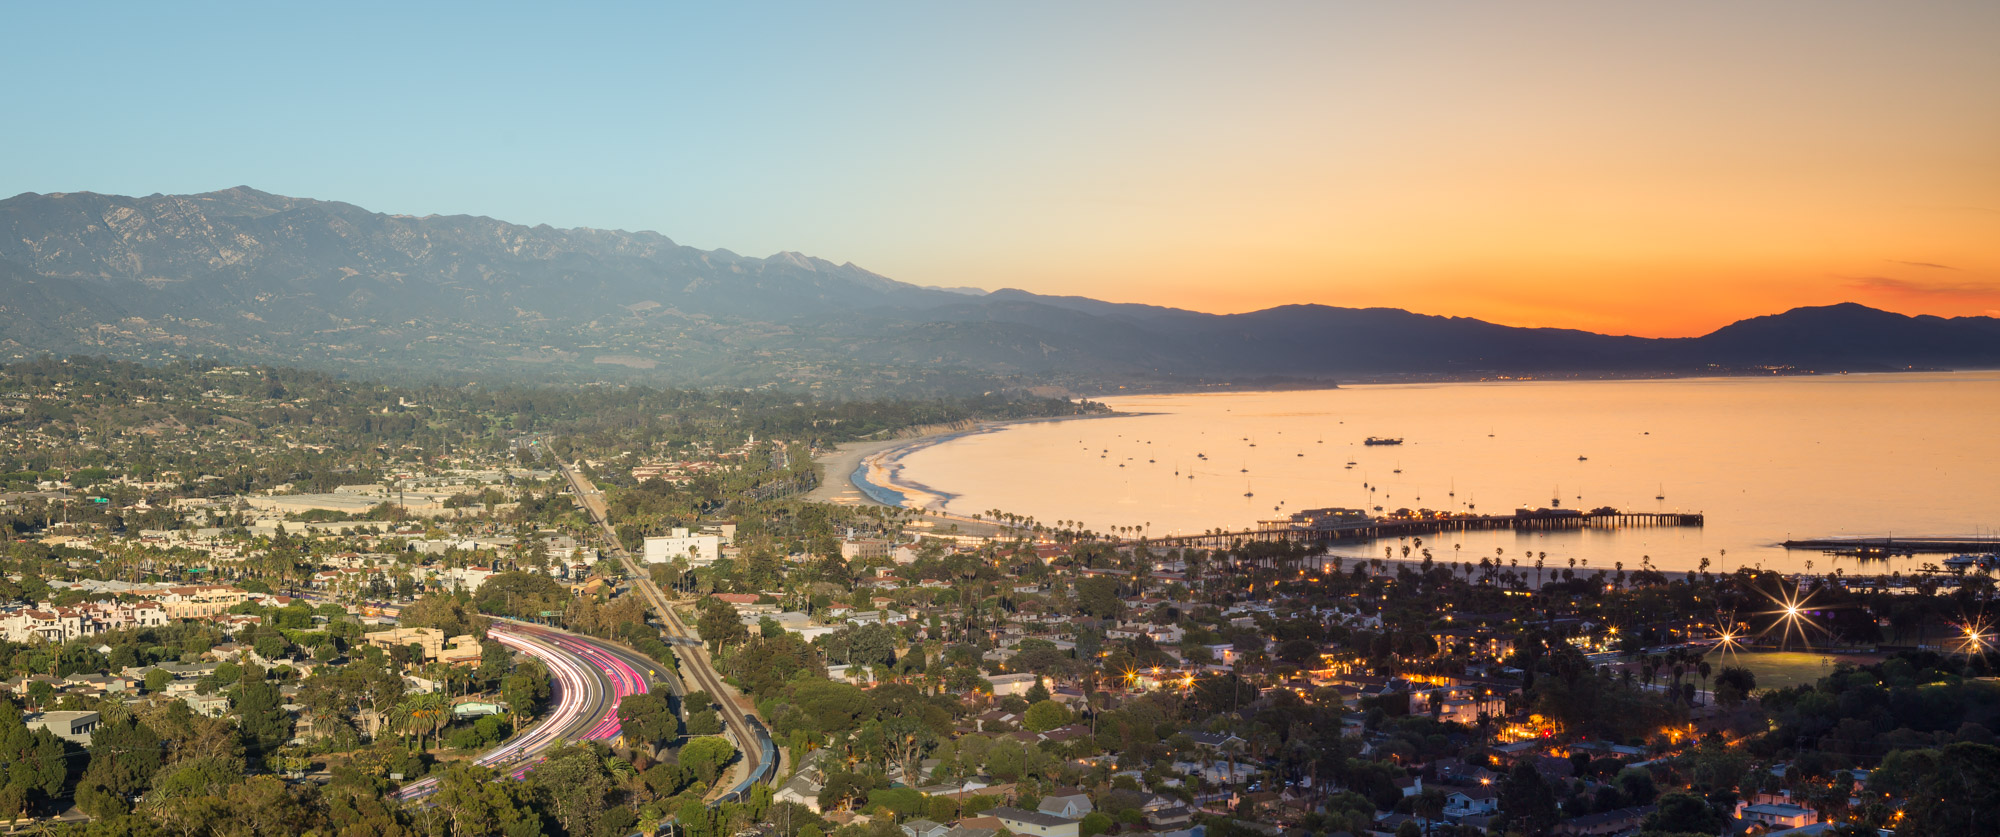 3-SB_TV_Hill_Day_Night_Timelapse_Sunset_Santa-Barbara-4D